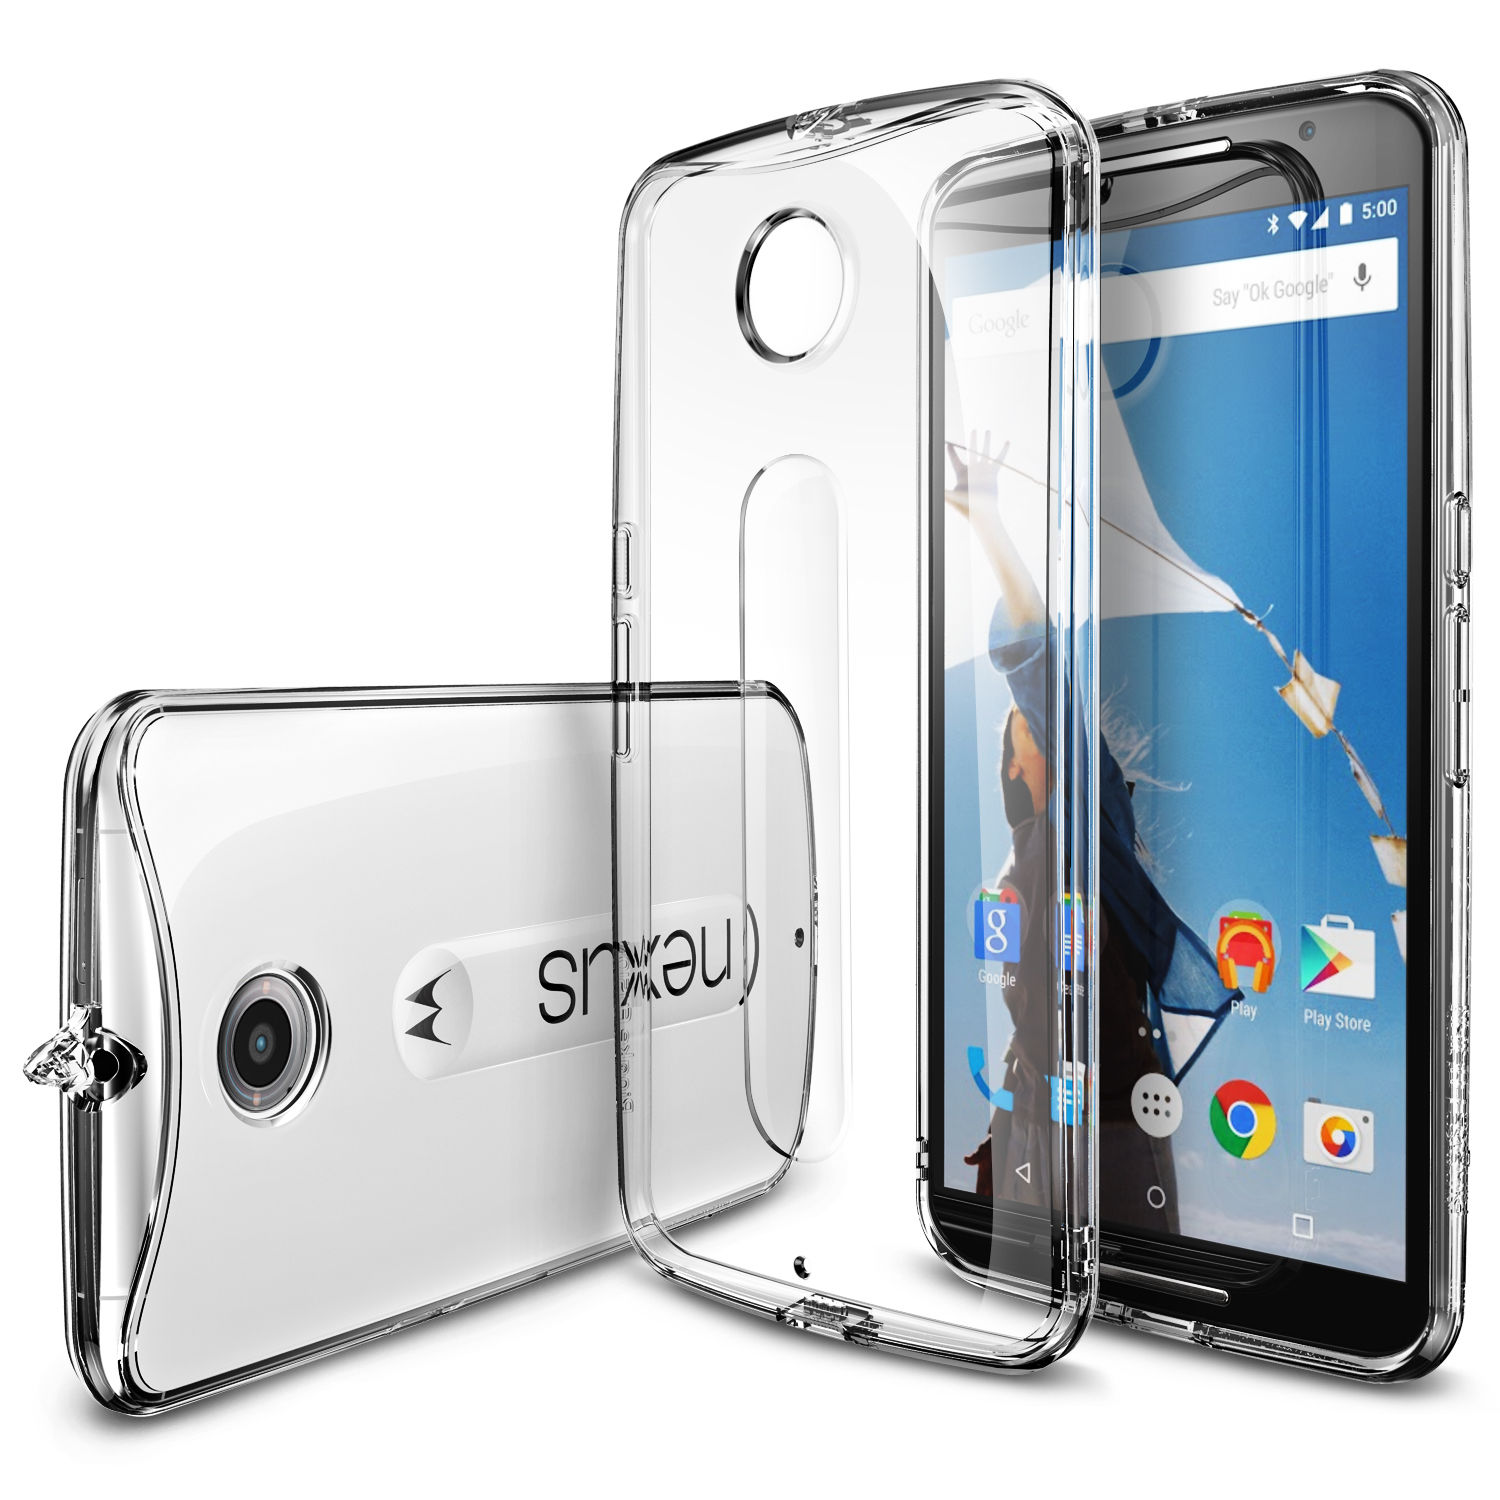 100 Original Ringke Fusion Case for Google Nexus 6 Full Protection Clear Back Cover Phone Cases